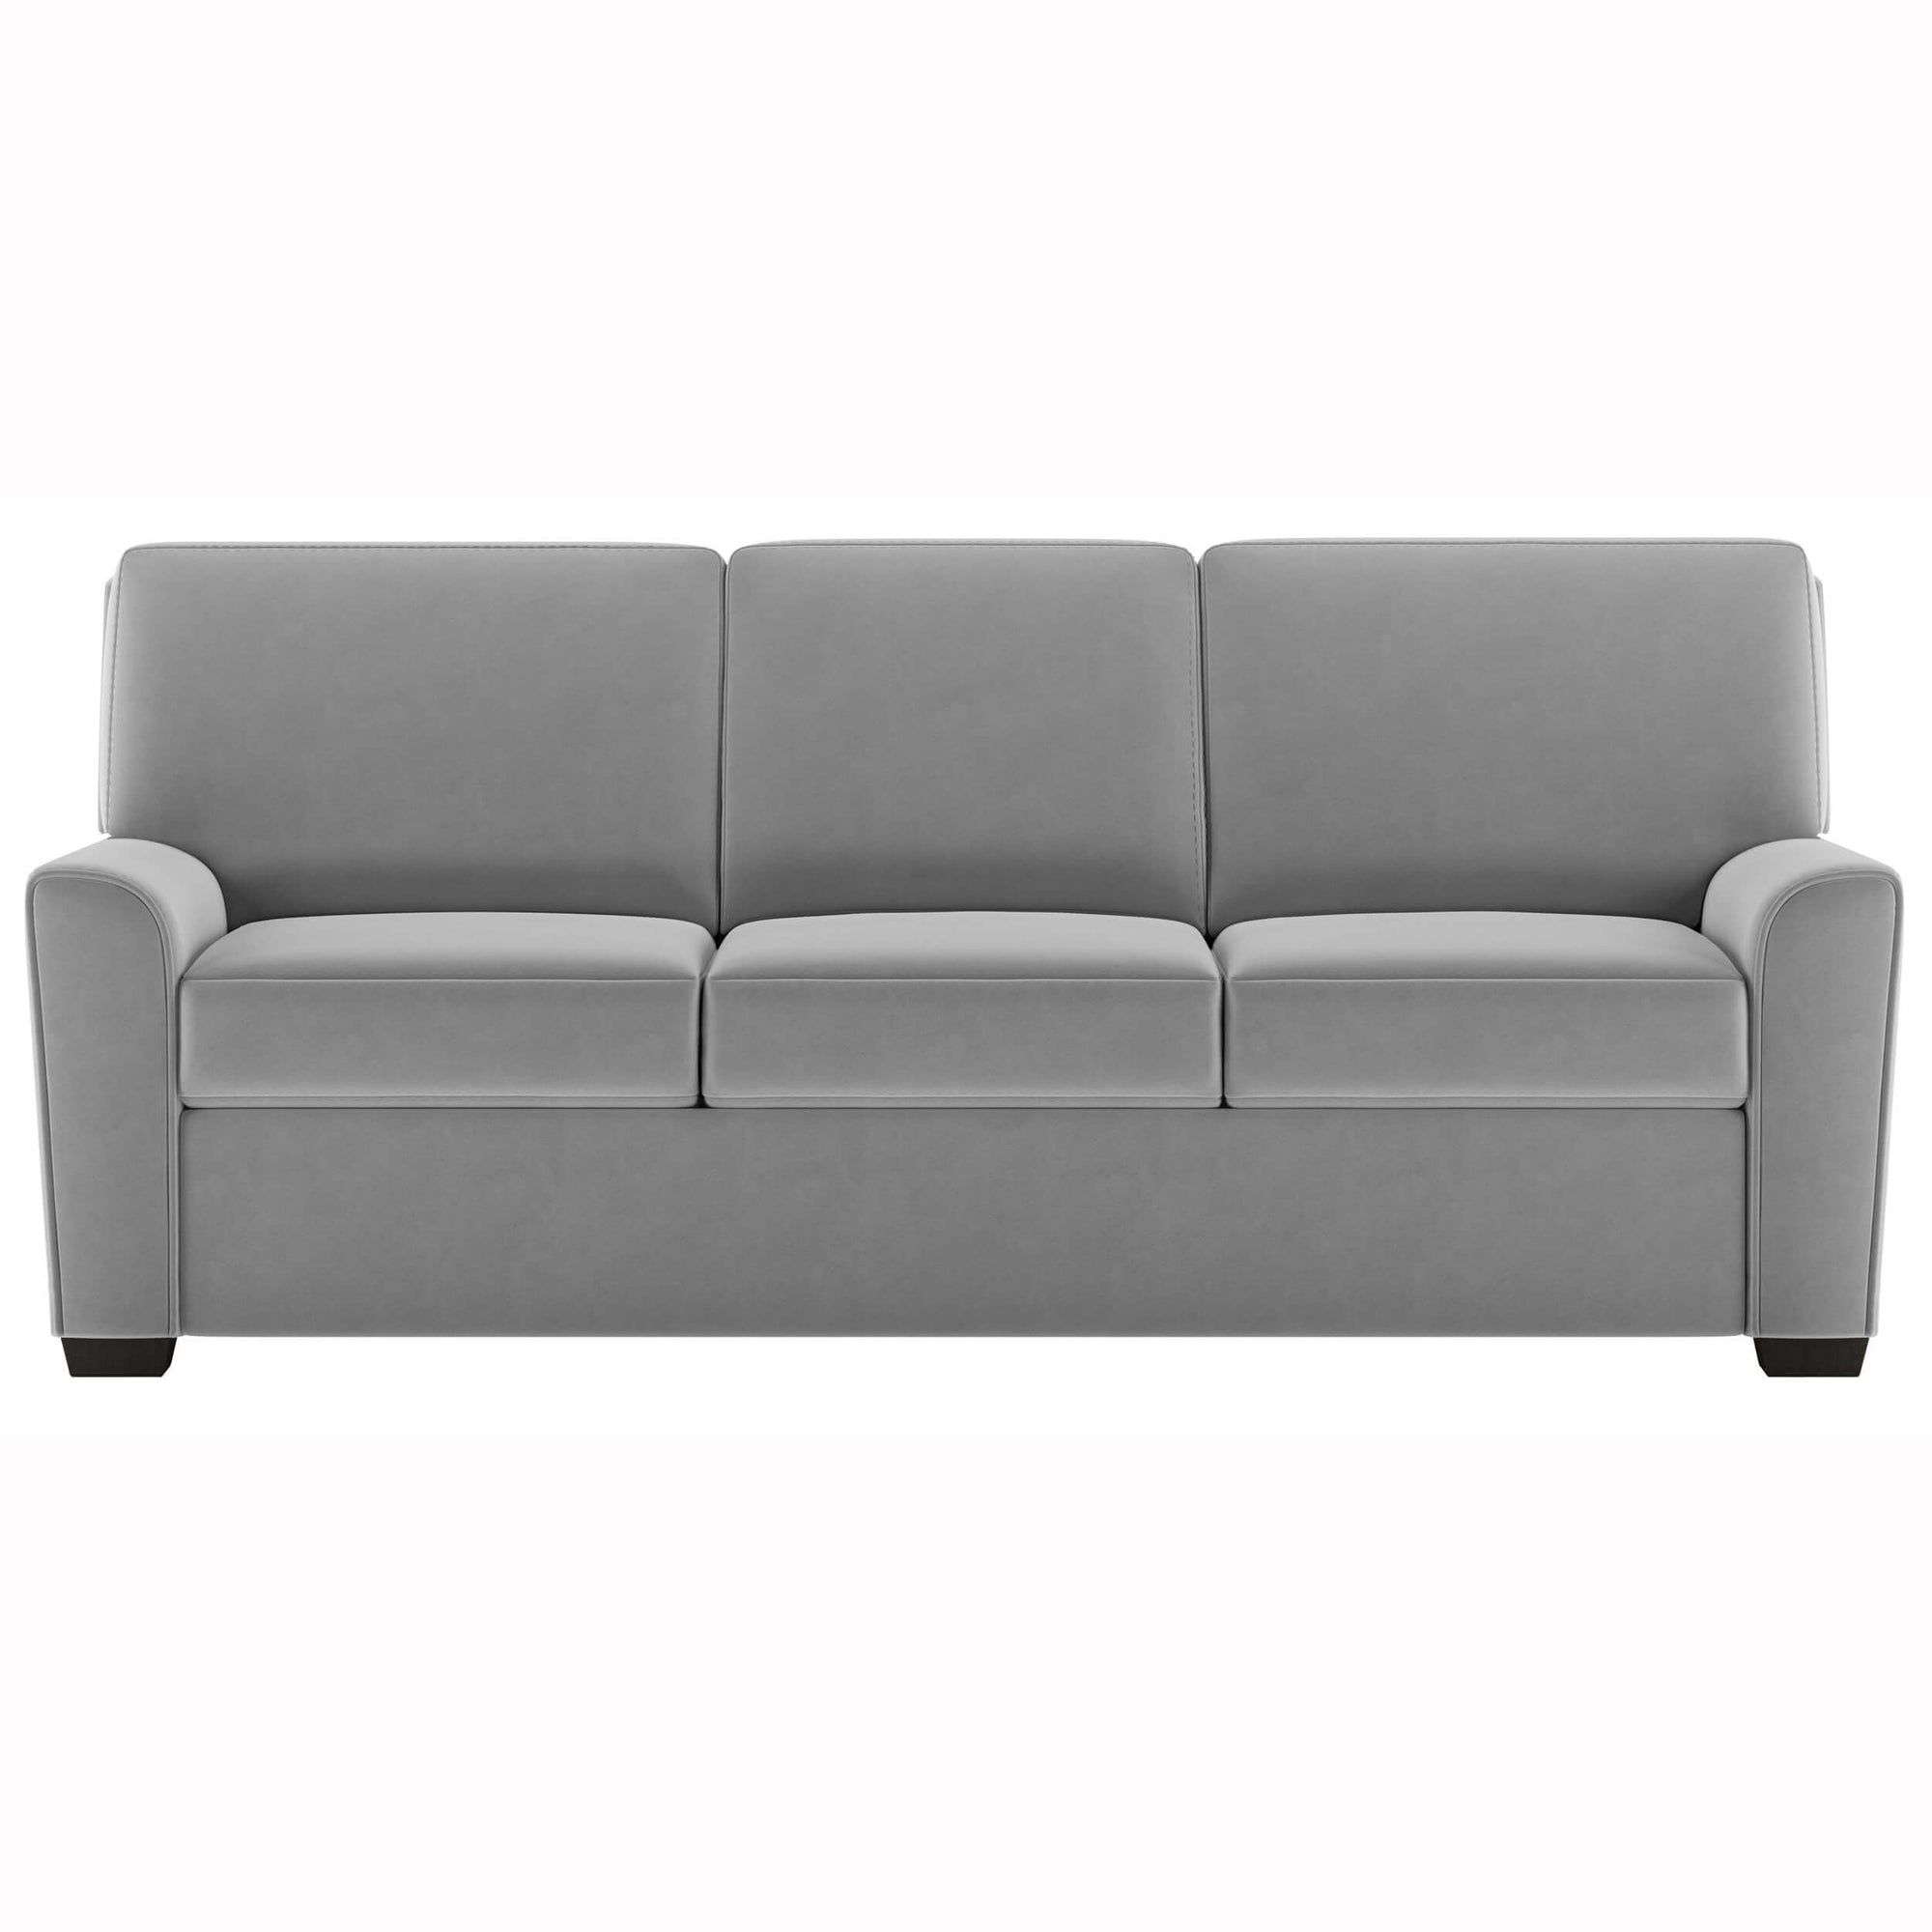 - American Leather Klein Queen Sleeper Sofa, Toray Ultrasuede French